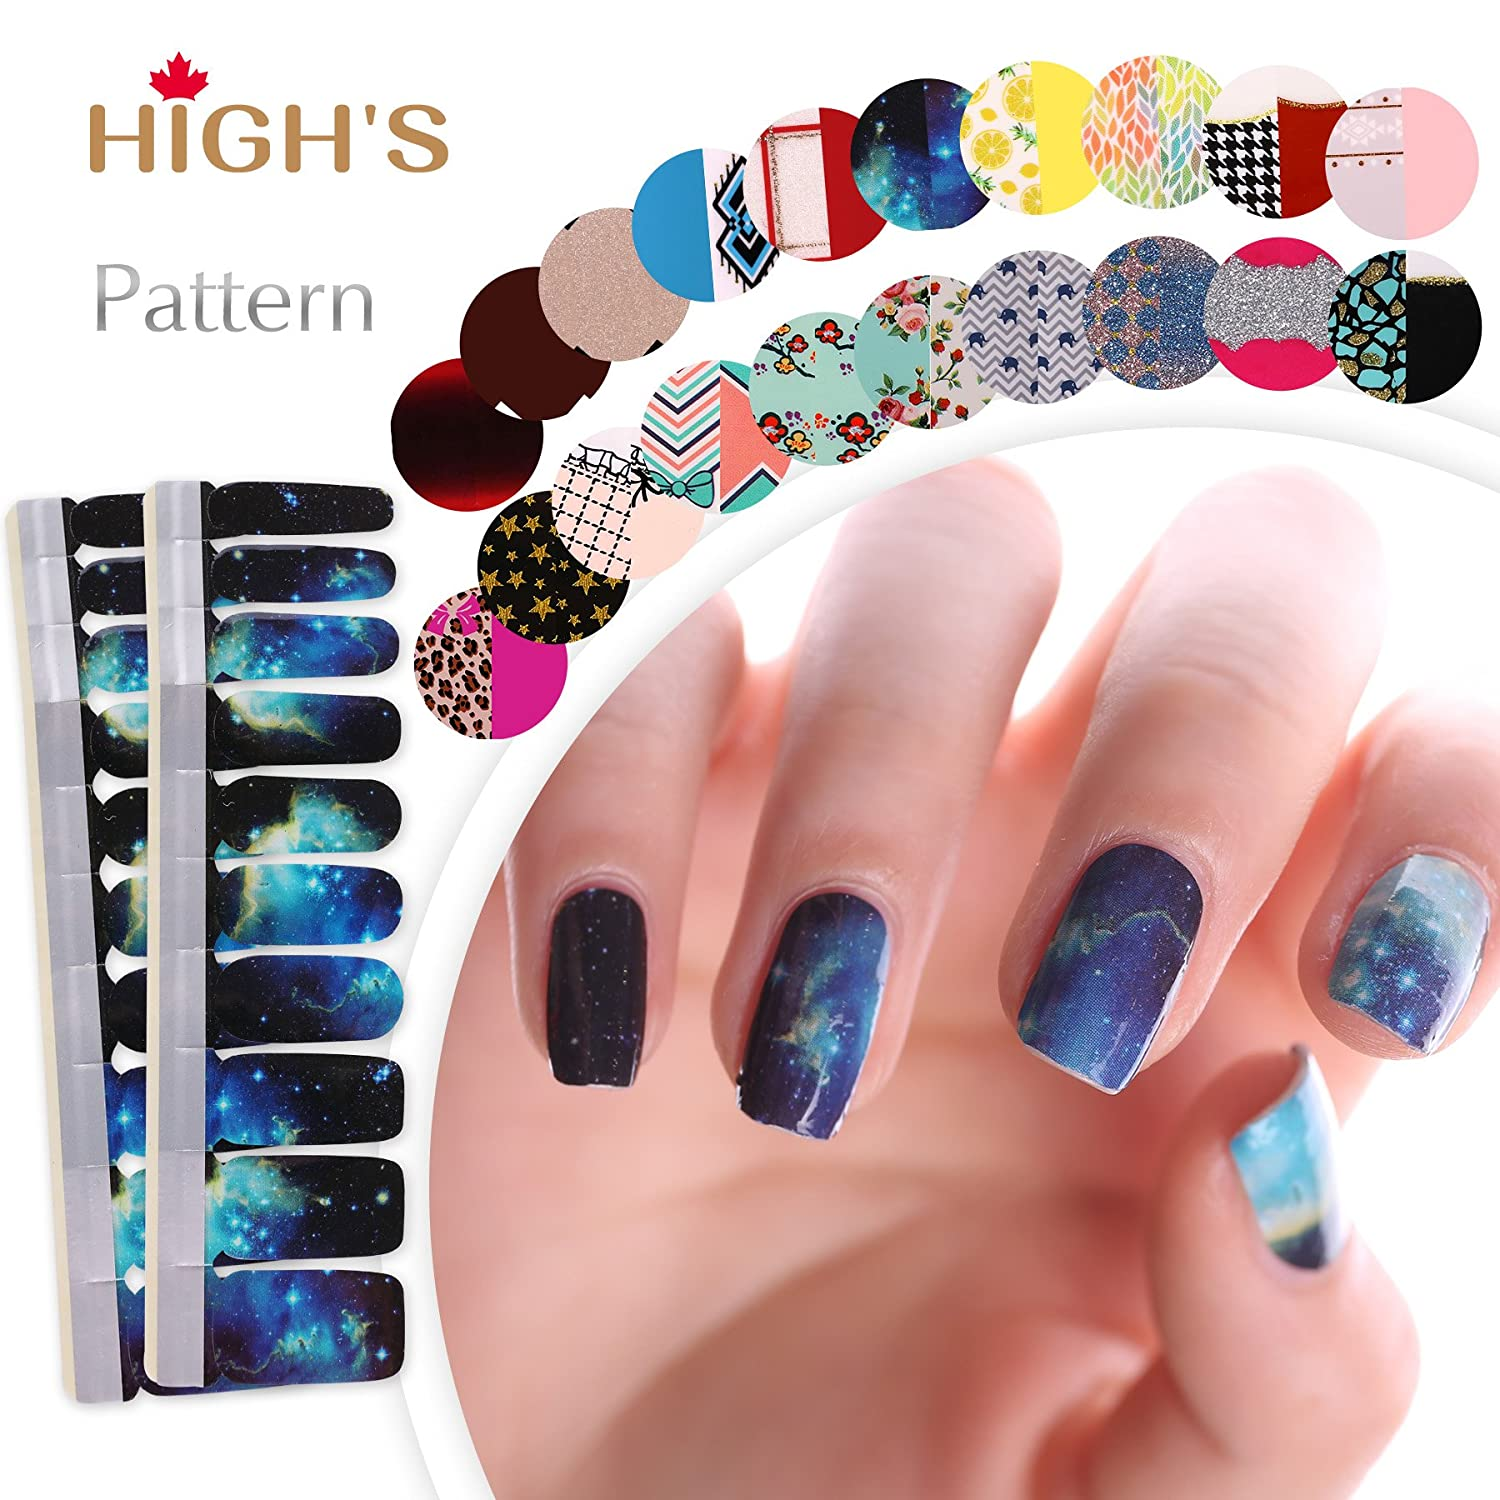 HIGH'S Upgrade EXTRE ADHESION Nail Wraps Decals Art Transfer Sticker Collection Manicure DIY Fullnail Polish patch Strips for Wedding, Party, Shopping, Travelling, 20pcs(Salmon) HIGH' S